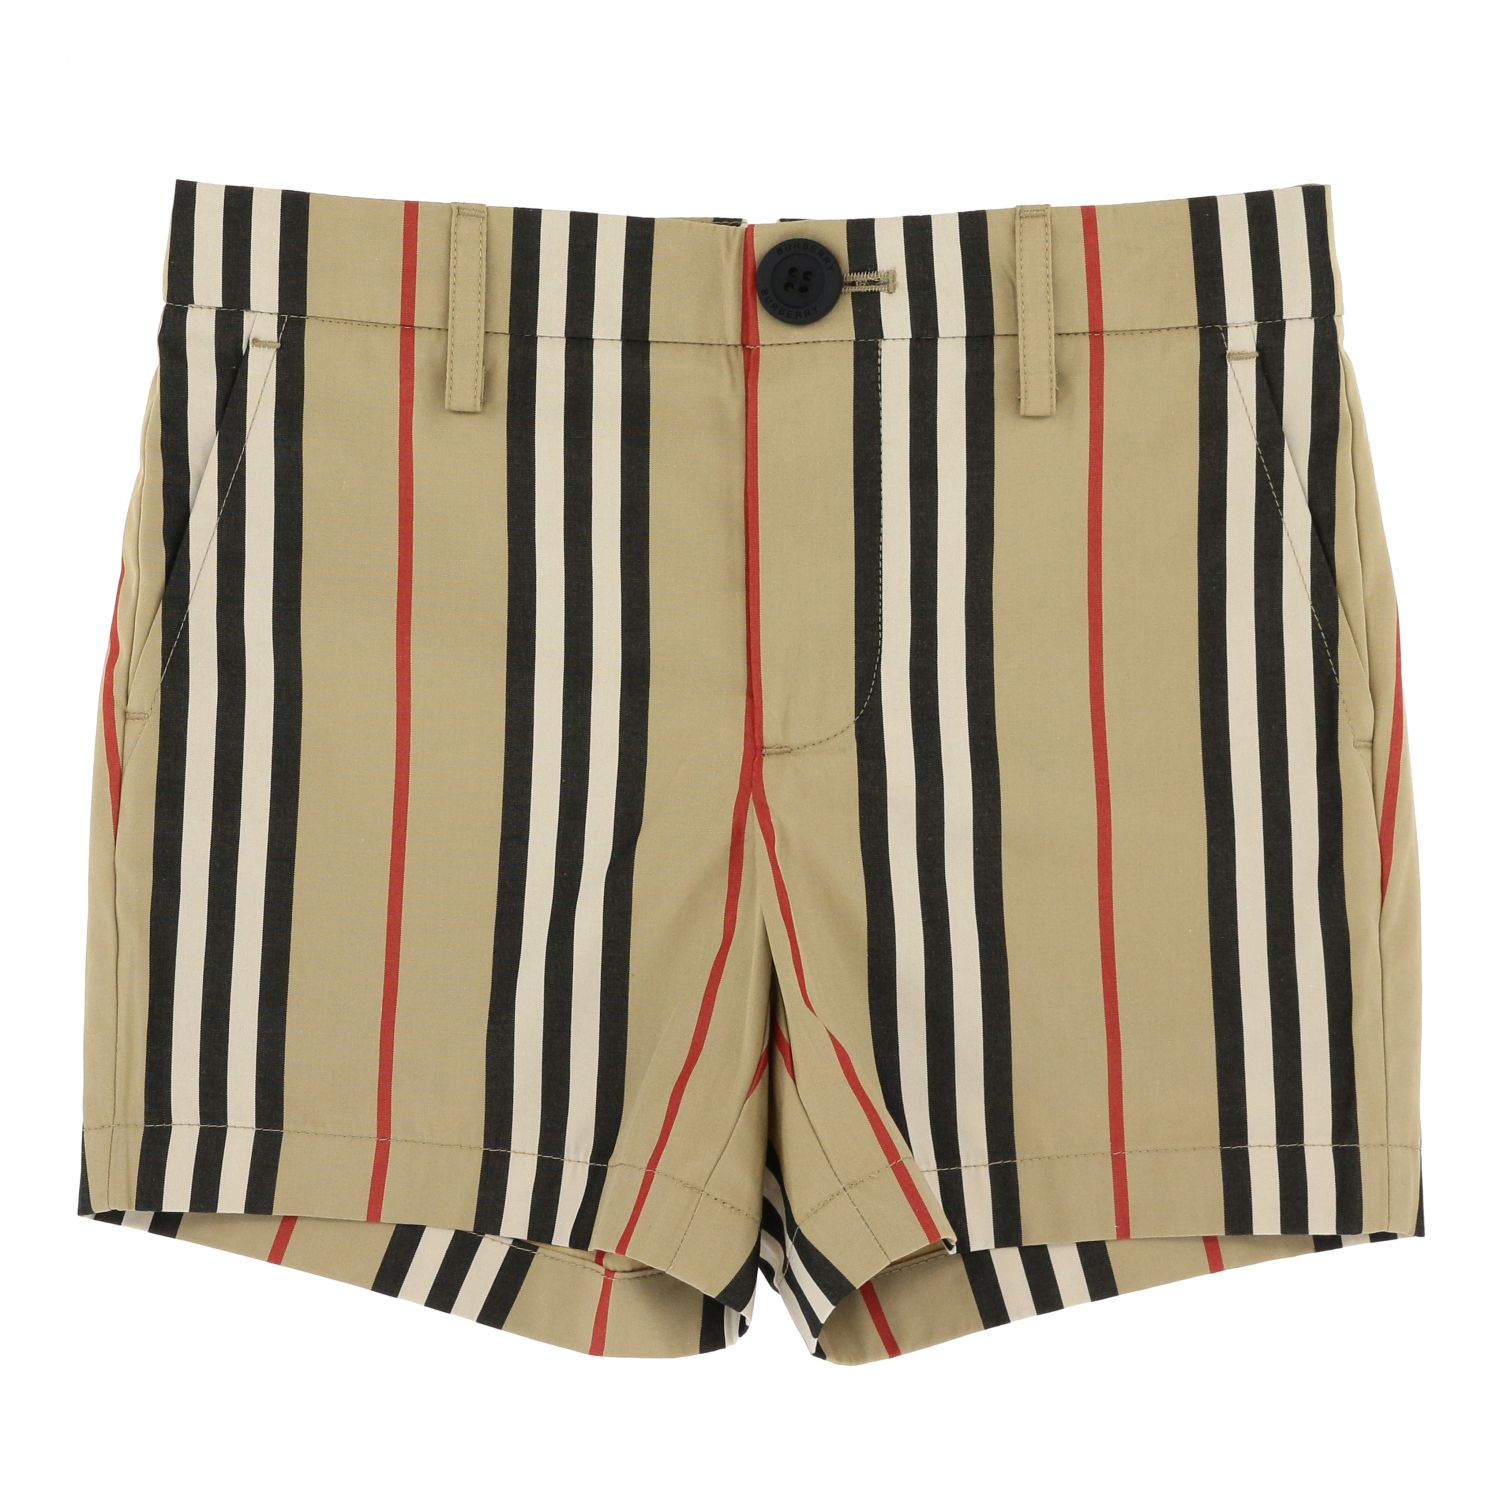 Classic vintage striped Burberry shorts beige 1